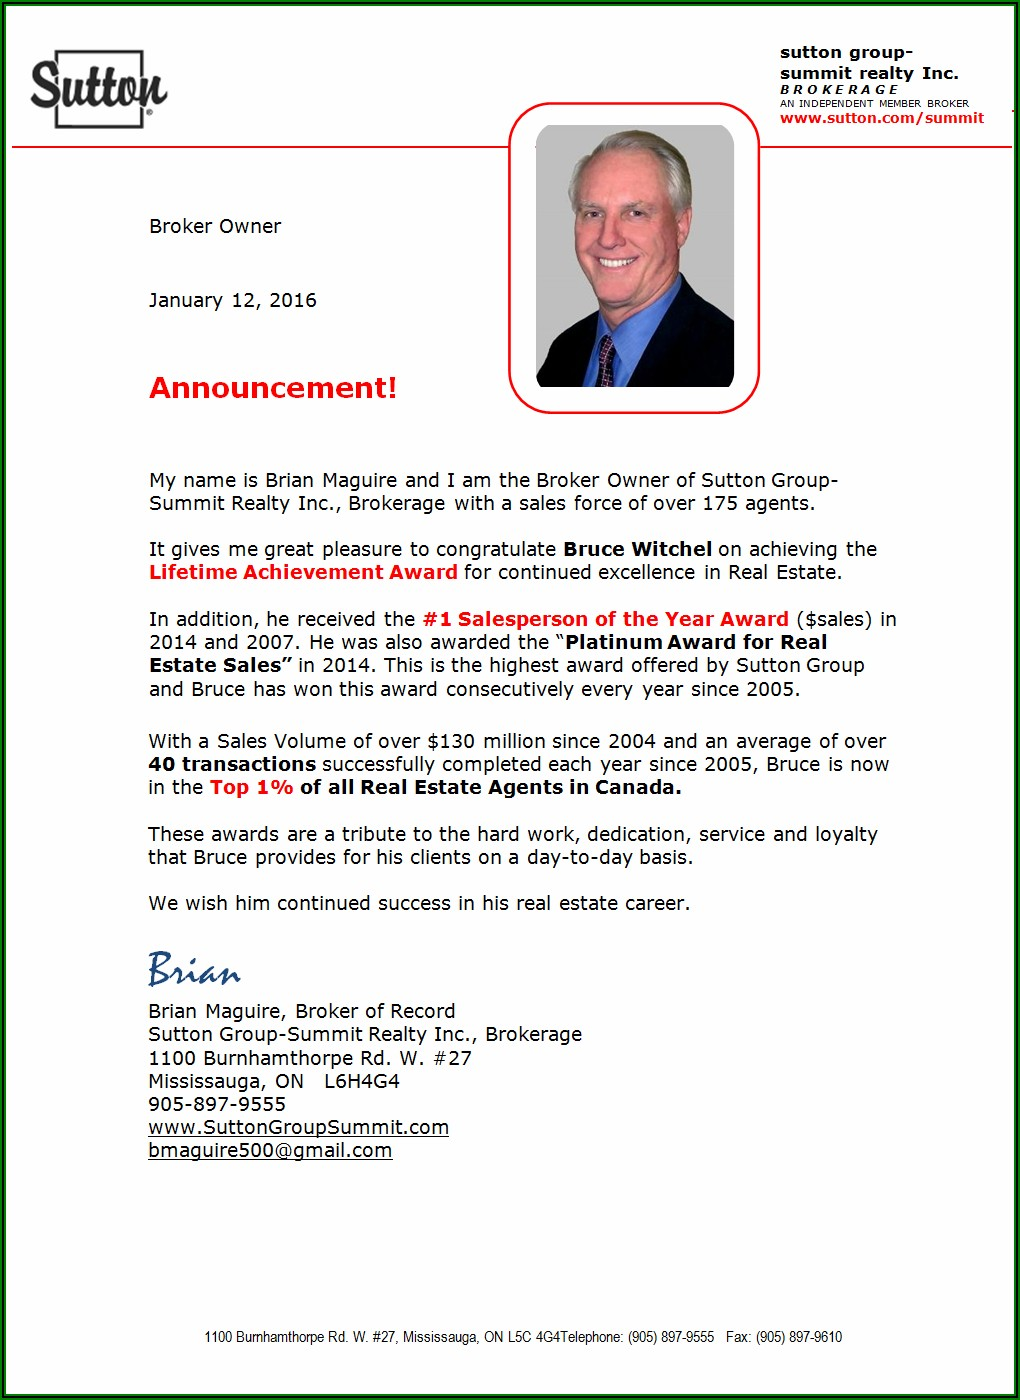 New Real Estate Agent Announcement Letter